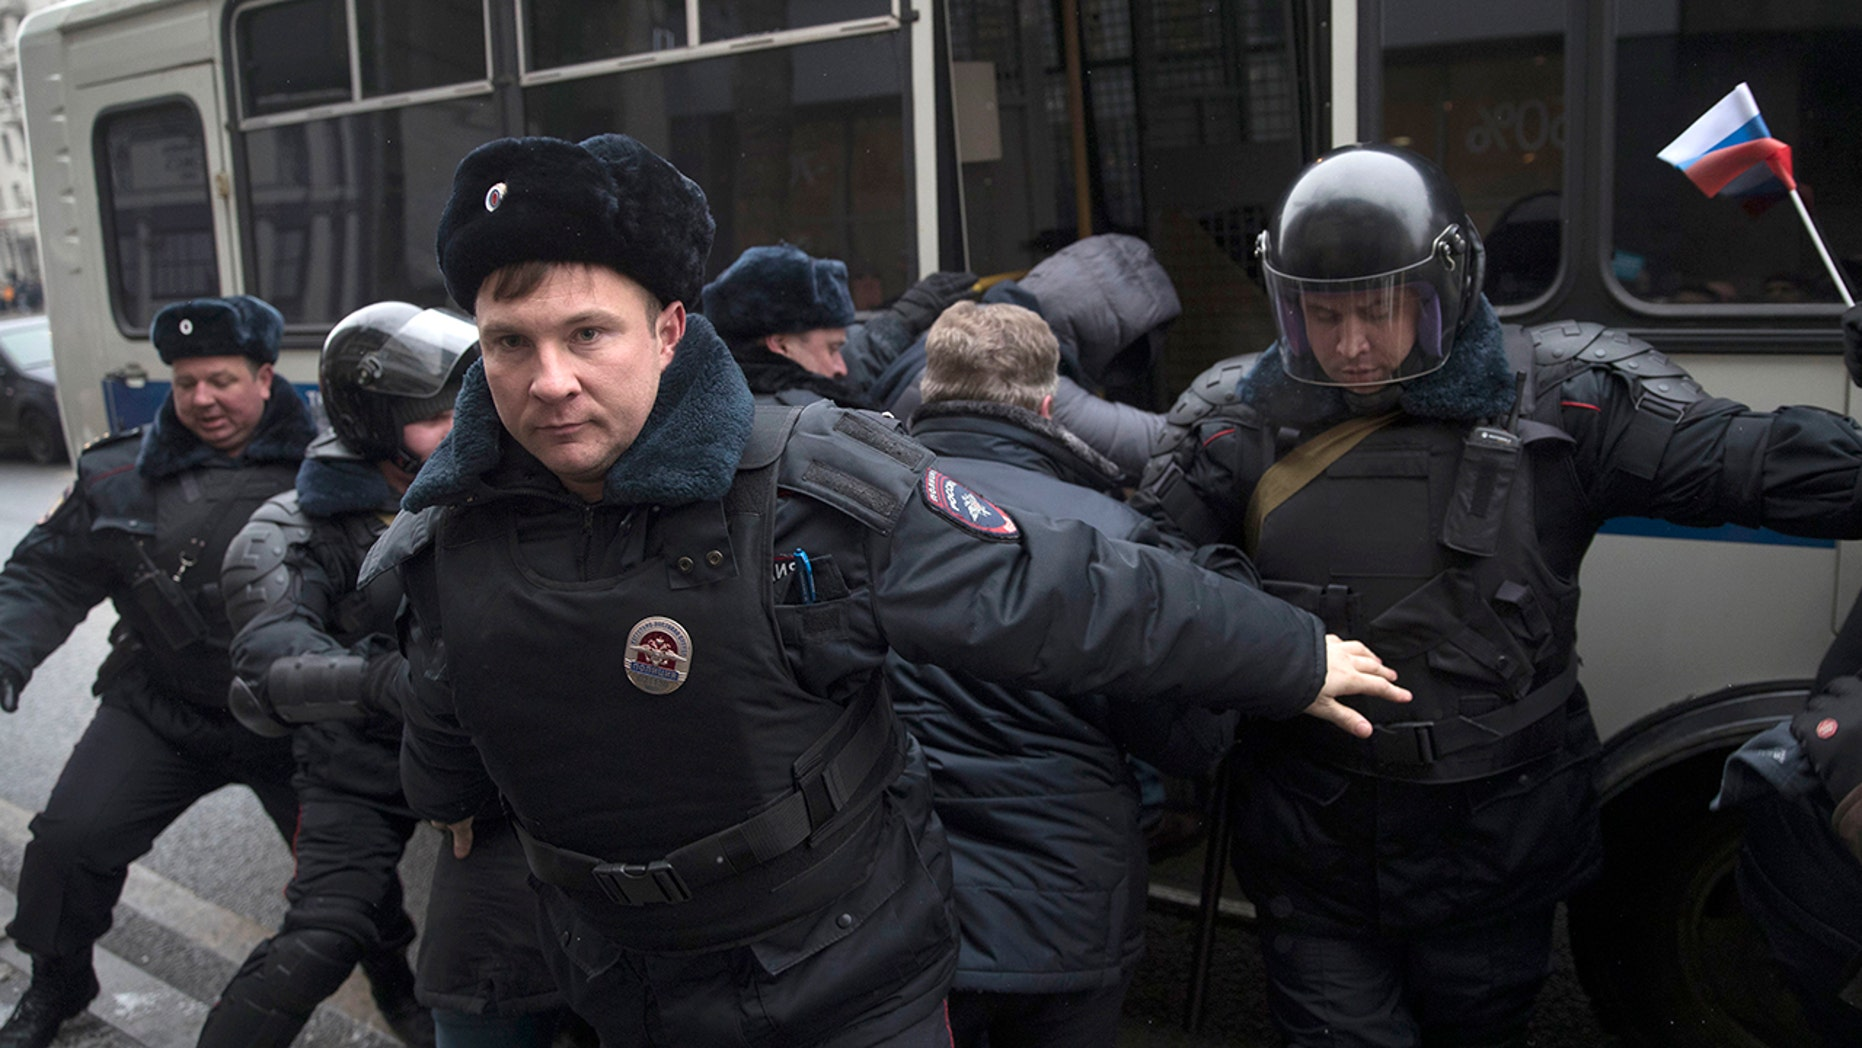 Russian opposition leader Alexei Navalny, in the background, is detained by police officers in Moscow, Russia, Sunday.